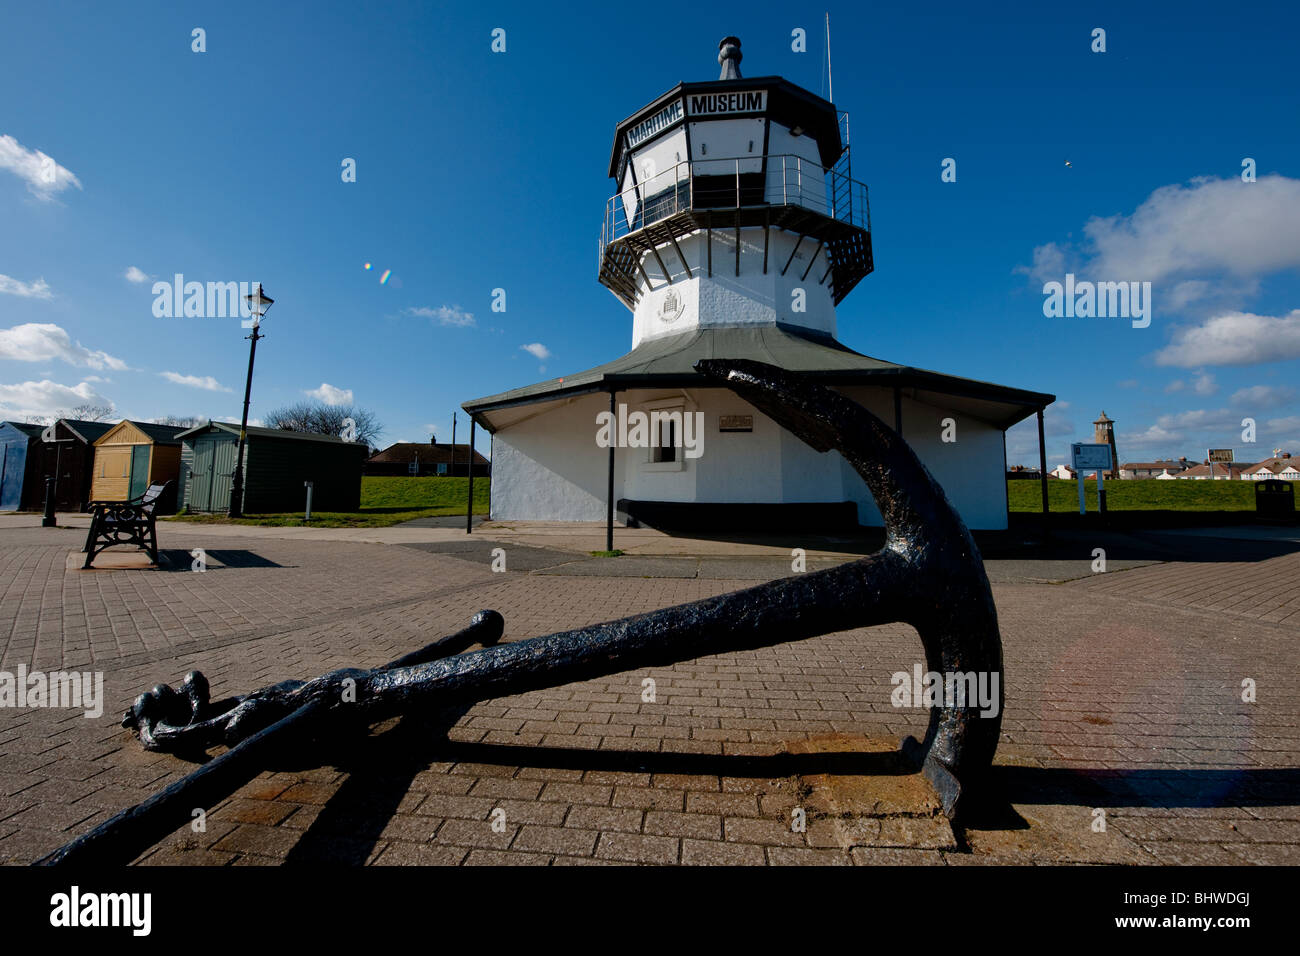 The Low Lighthouse with anchor at the port of Harwich, Essex, UK. Built in 1818 it is now home to the Maritime Museum. - Stock Image